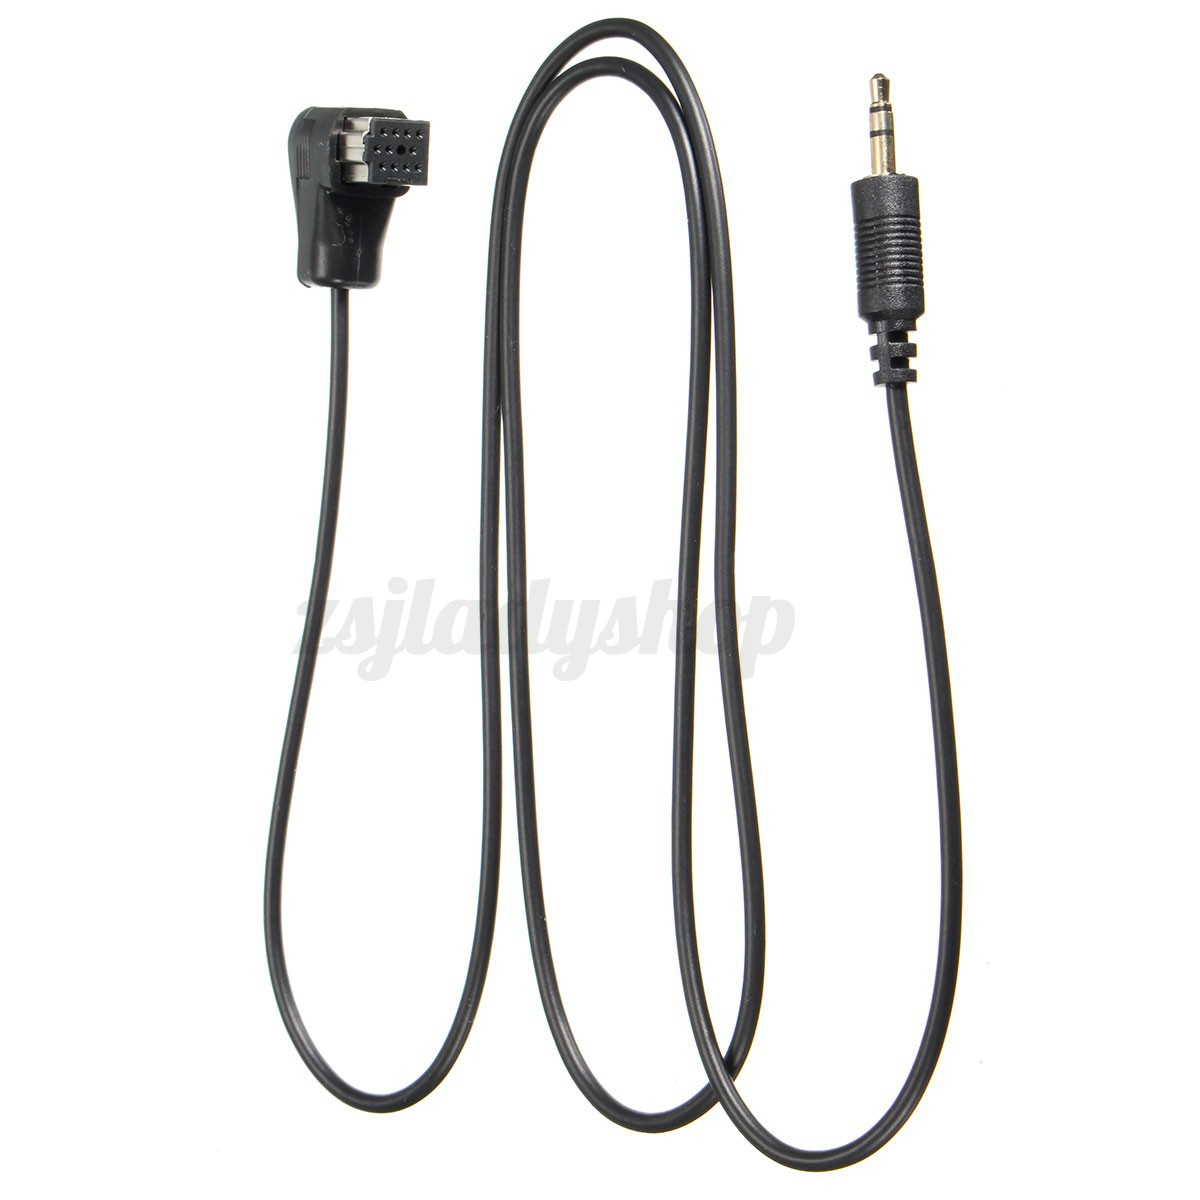 3.5mm AUX Input Cable to Car Pioneer Stereo Headunit IP